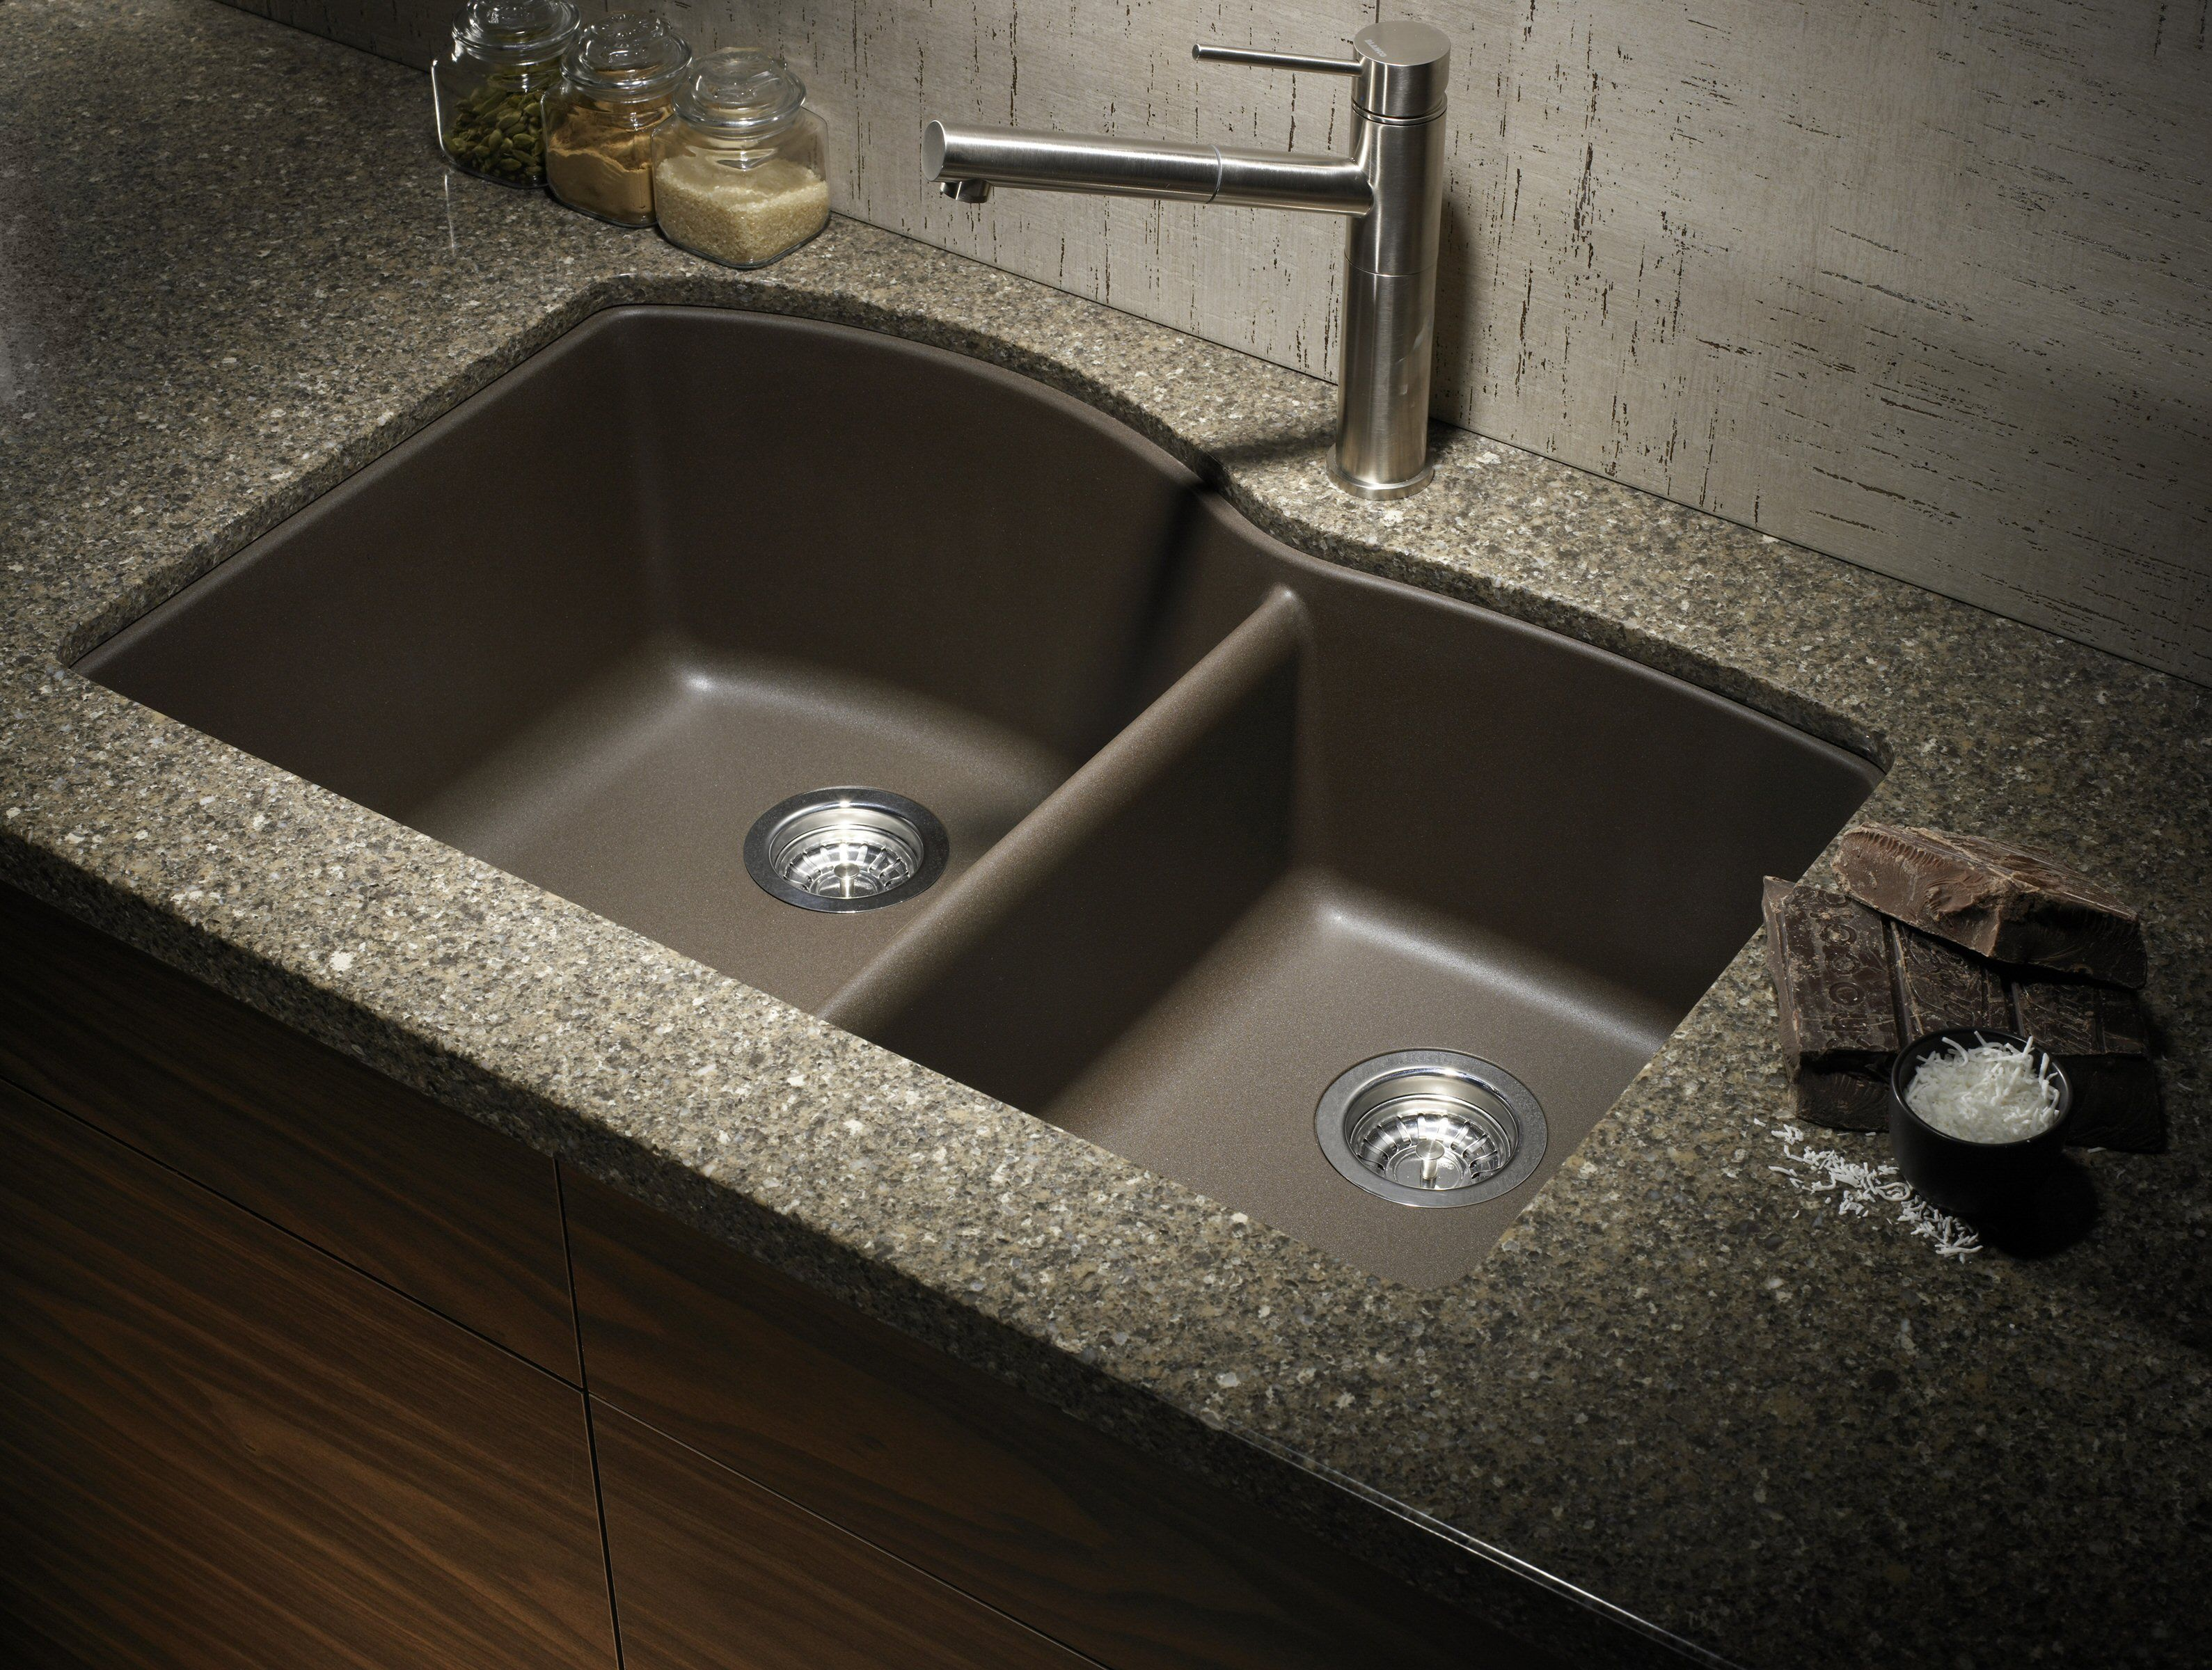 composite kitchen sink aid stand mixer attachments how to clean a granite diy crafts